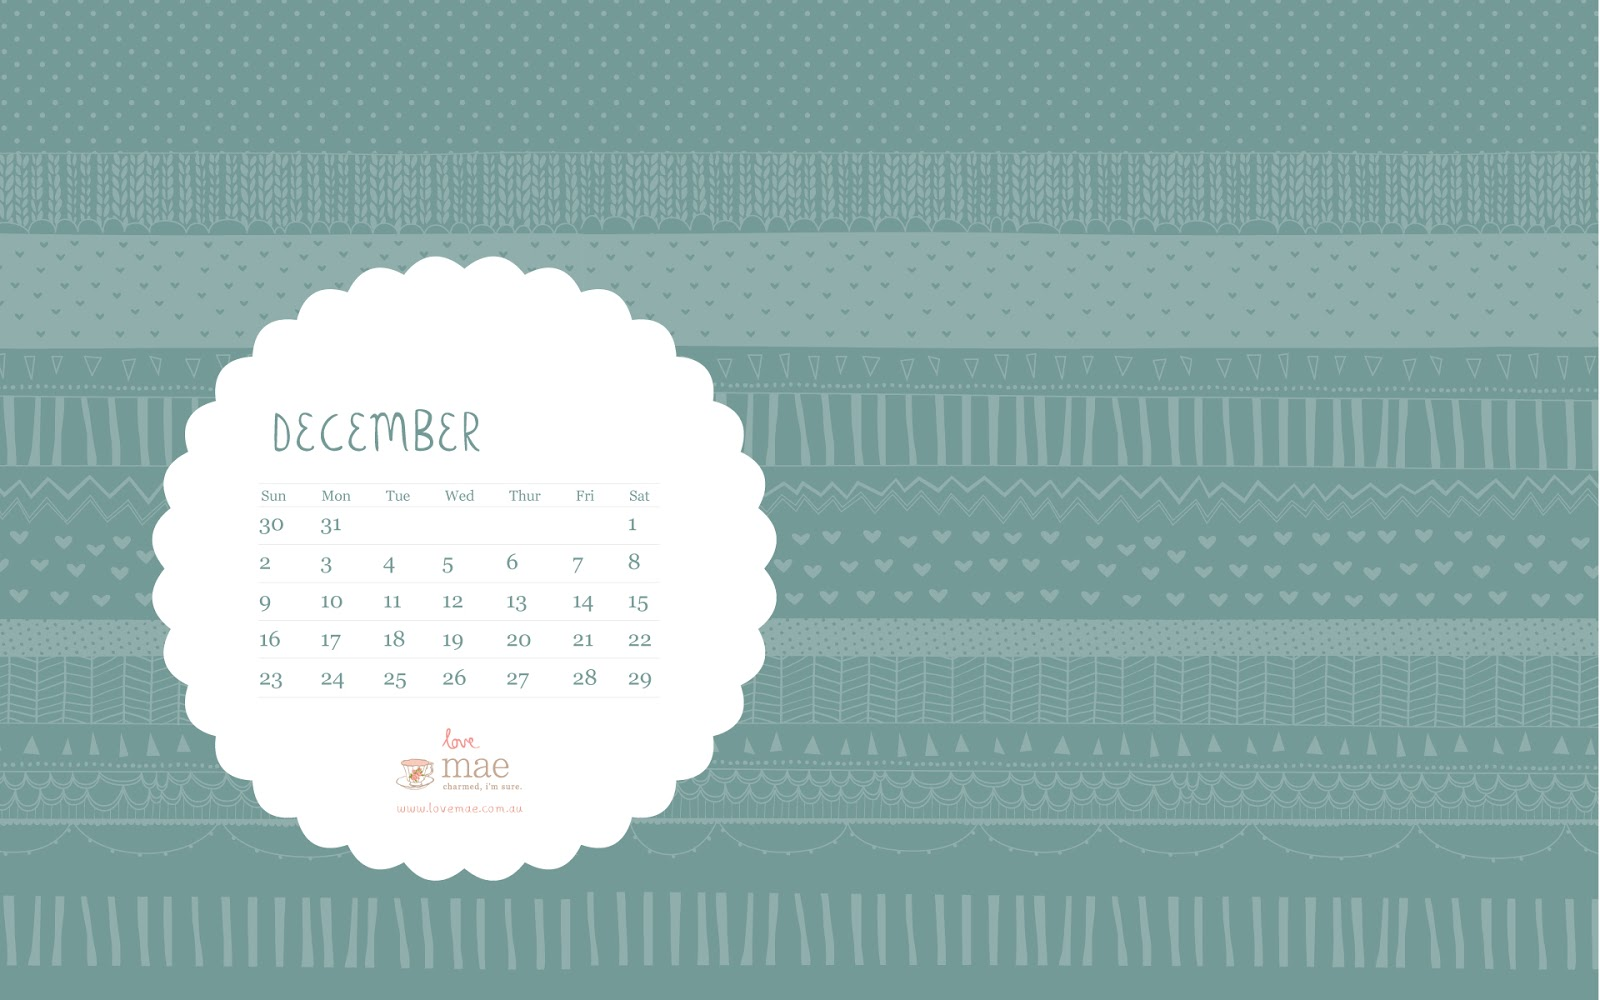 Calendar Wallpaper Love Mae : December free desktop calendar love mae